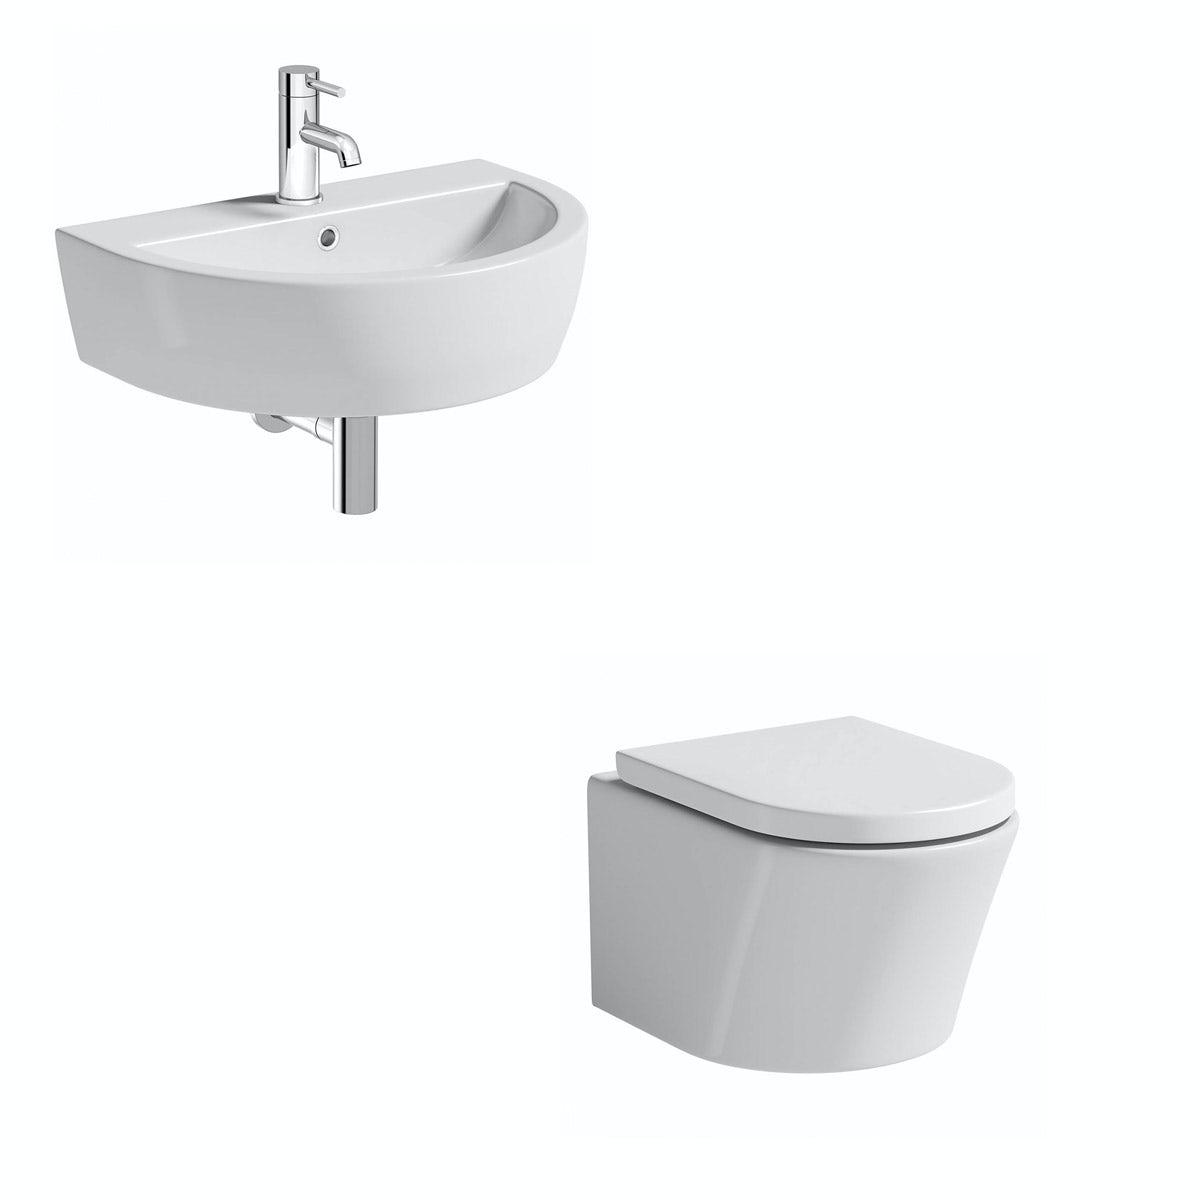 Mode Tate cloakroom suite with contemporary wall hung basin 550mm